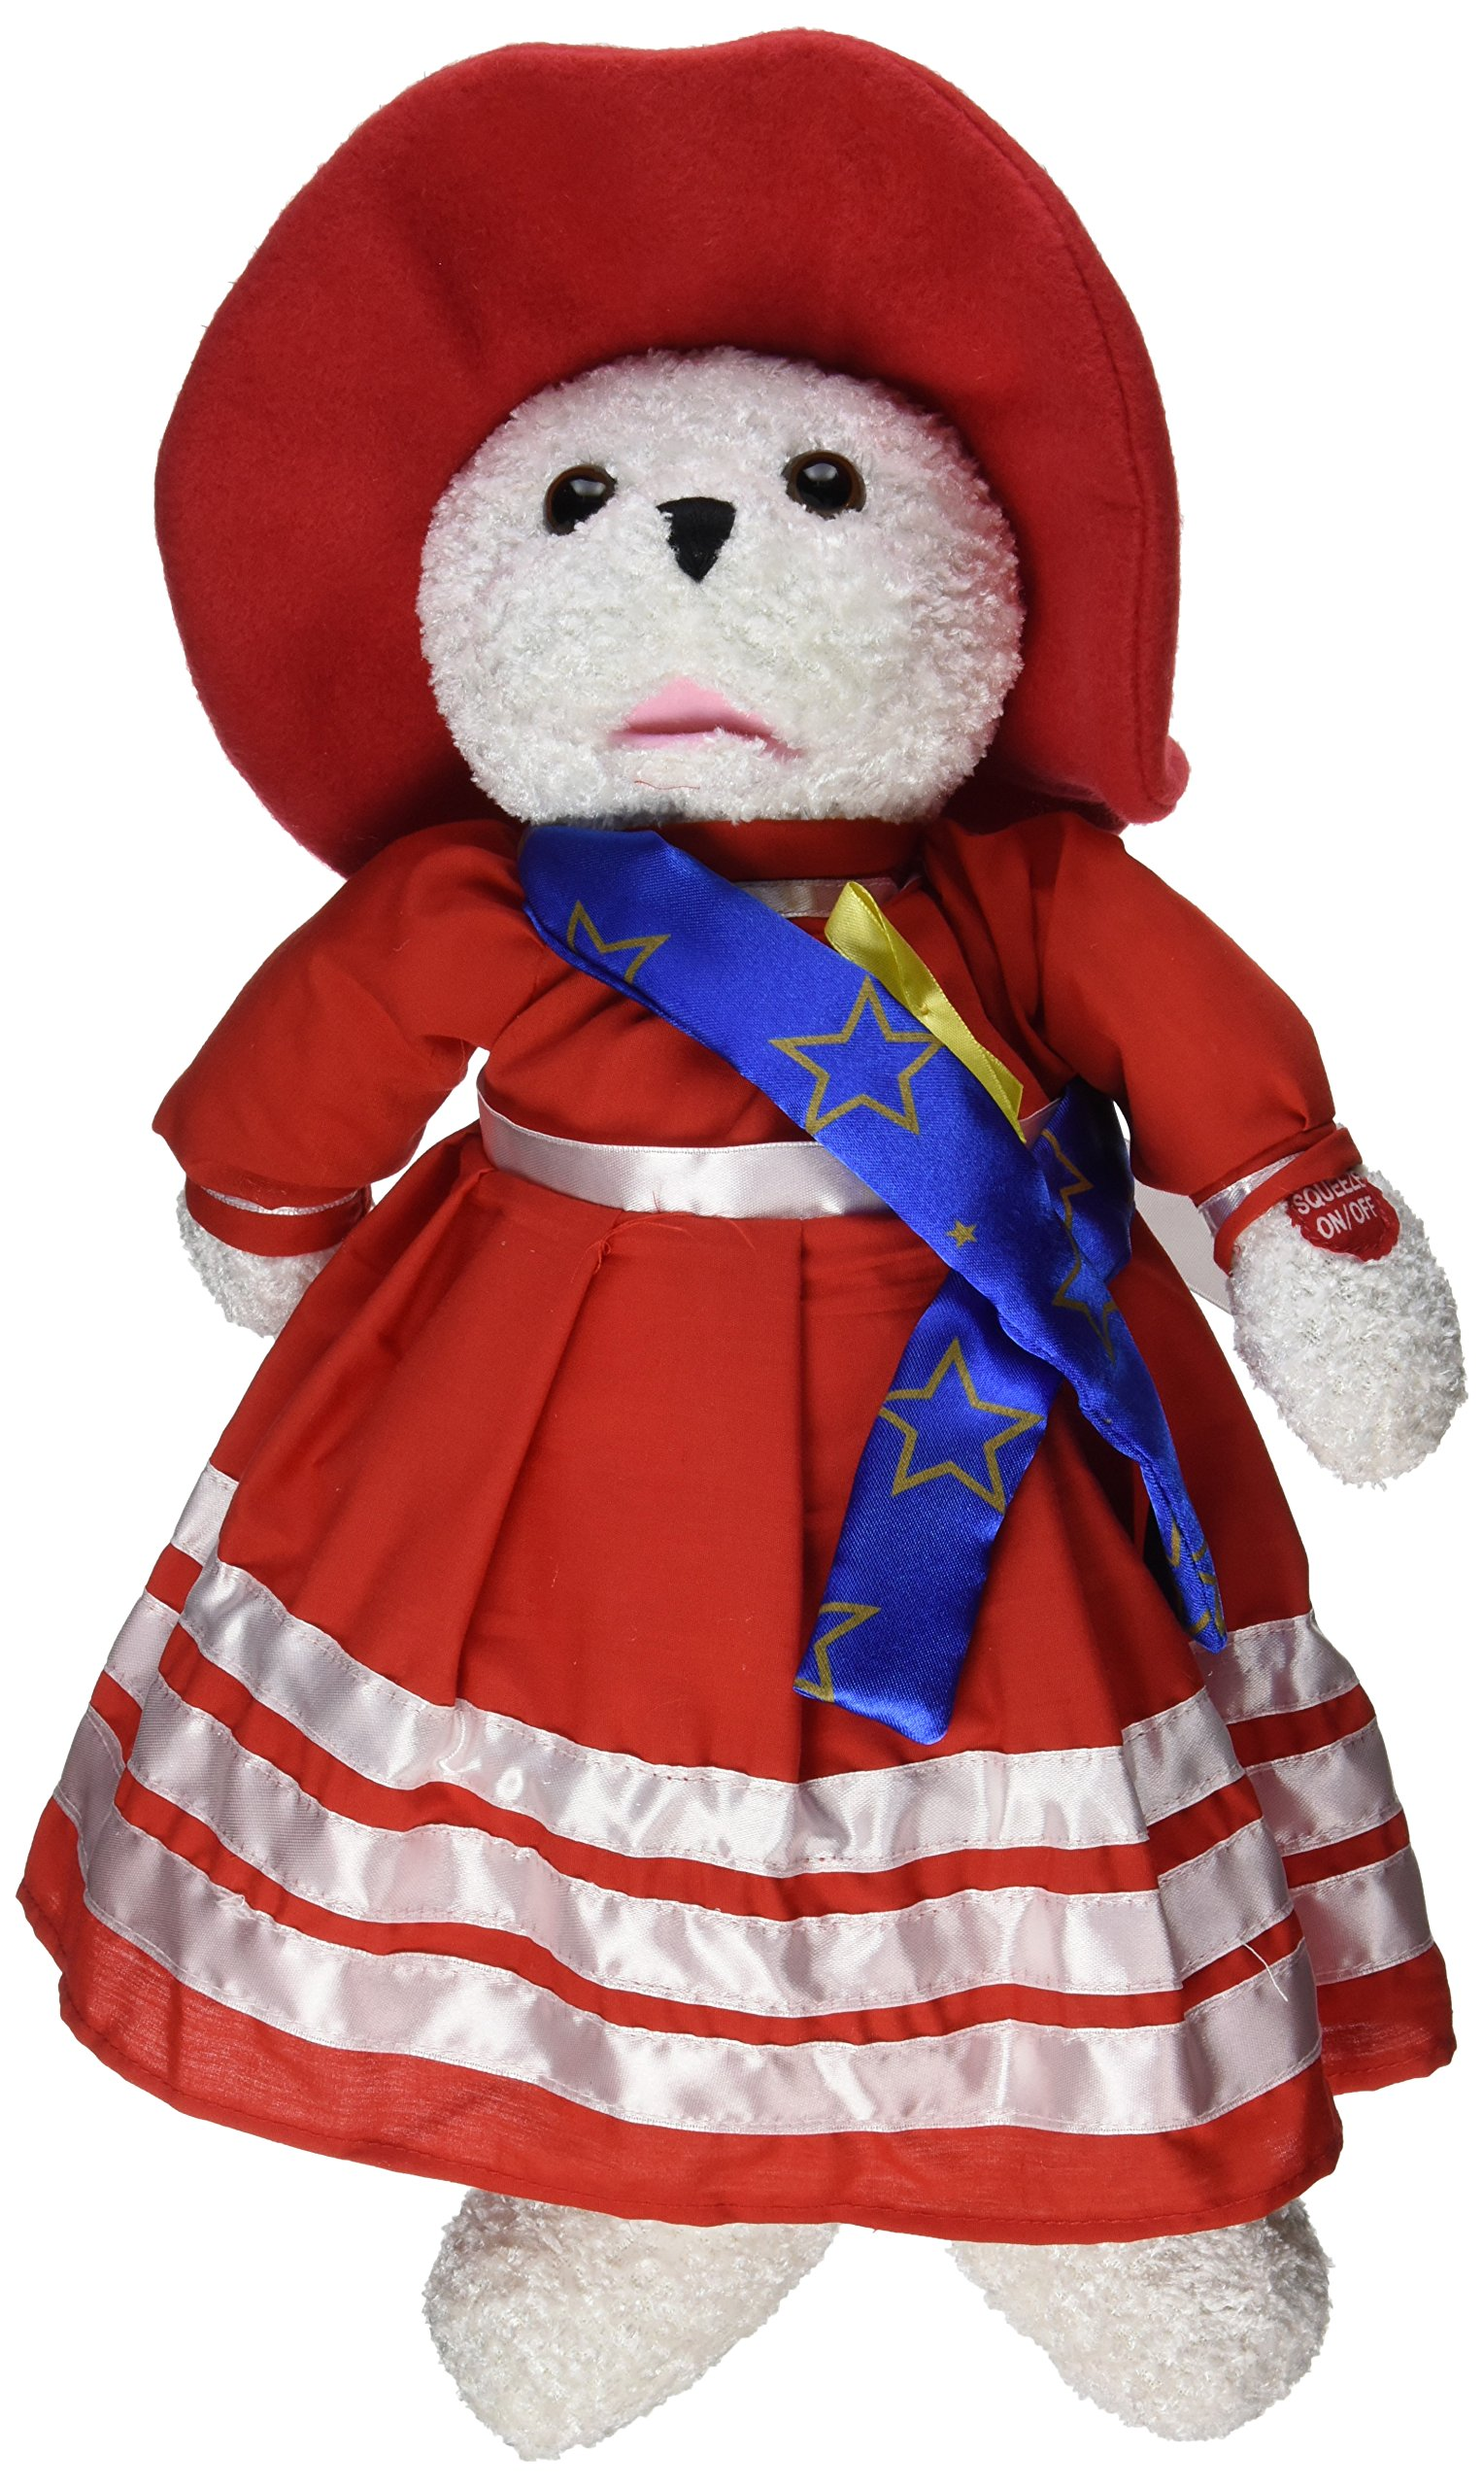 Chantilly Lane 19'' Betsy Patriotic Bear Plush Singing - God Bless America by Chantilly Lane